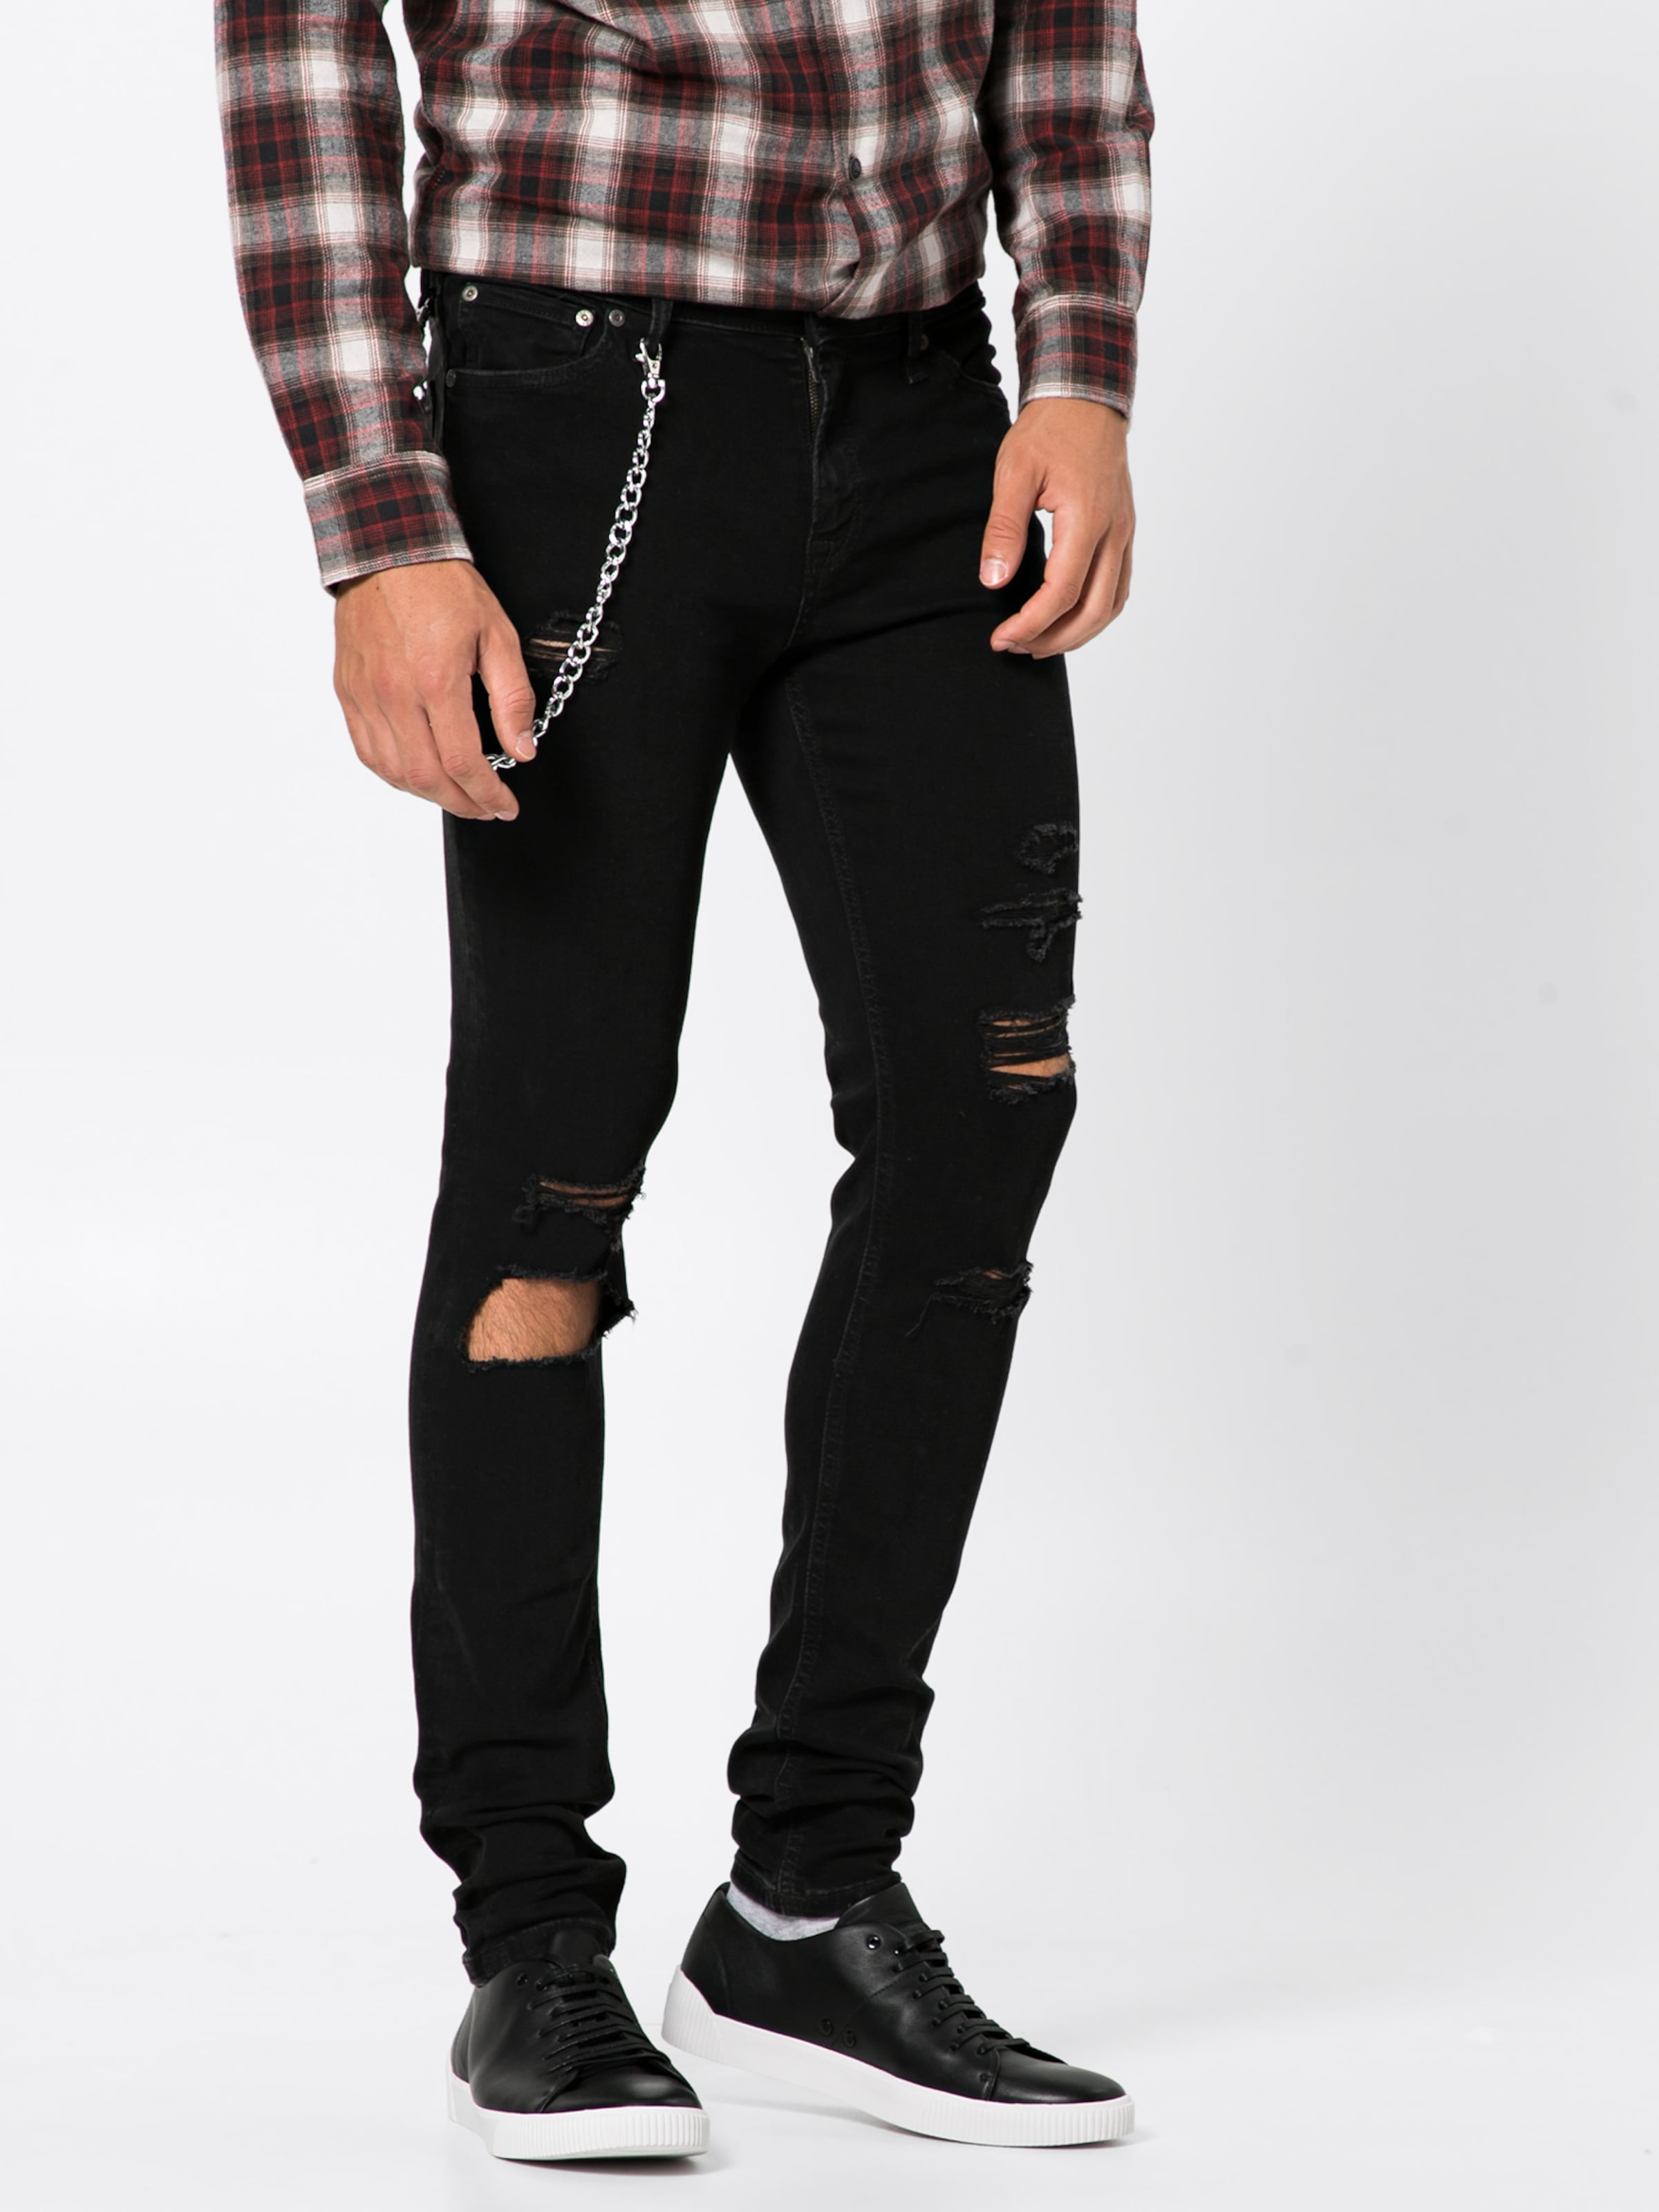 Jackamp; Black In Jeans Jones Denim SUpVzMGLq